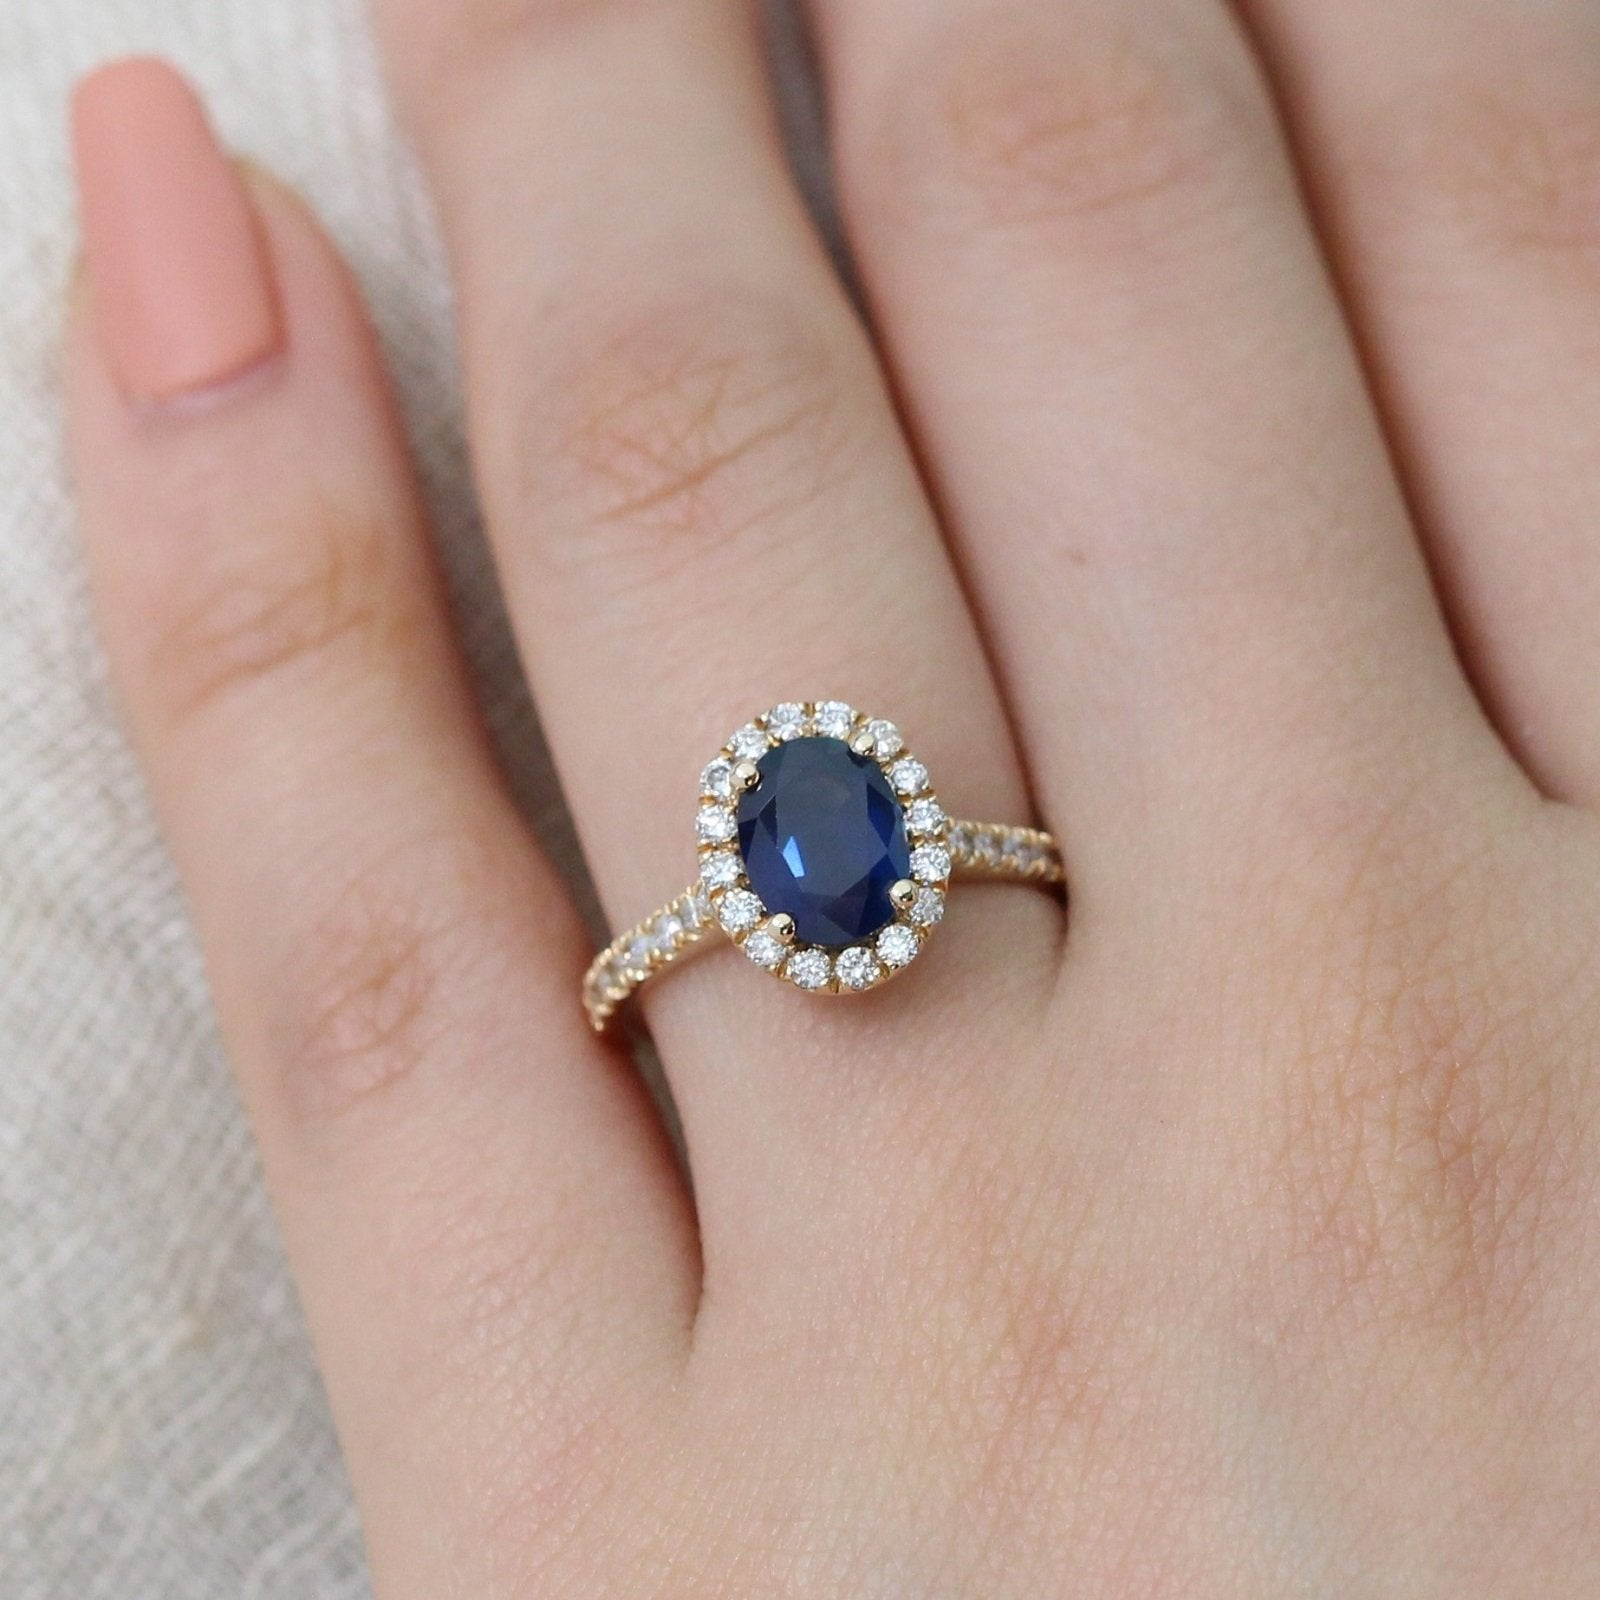 Luna Halo Ring in Pave Band w/ Oval Blue Sapphire and Diamond | La ...